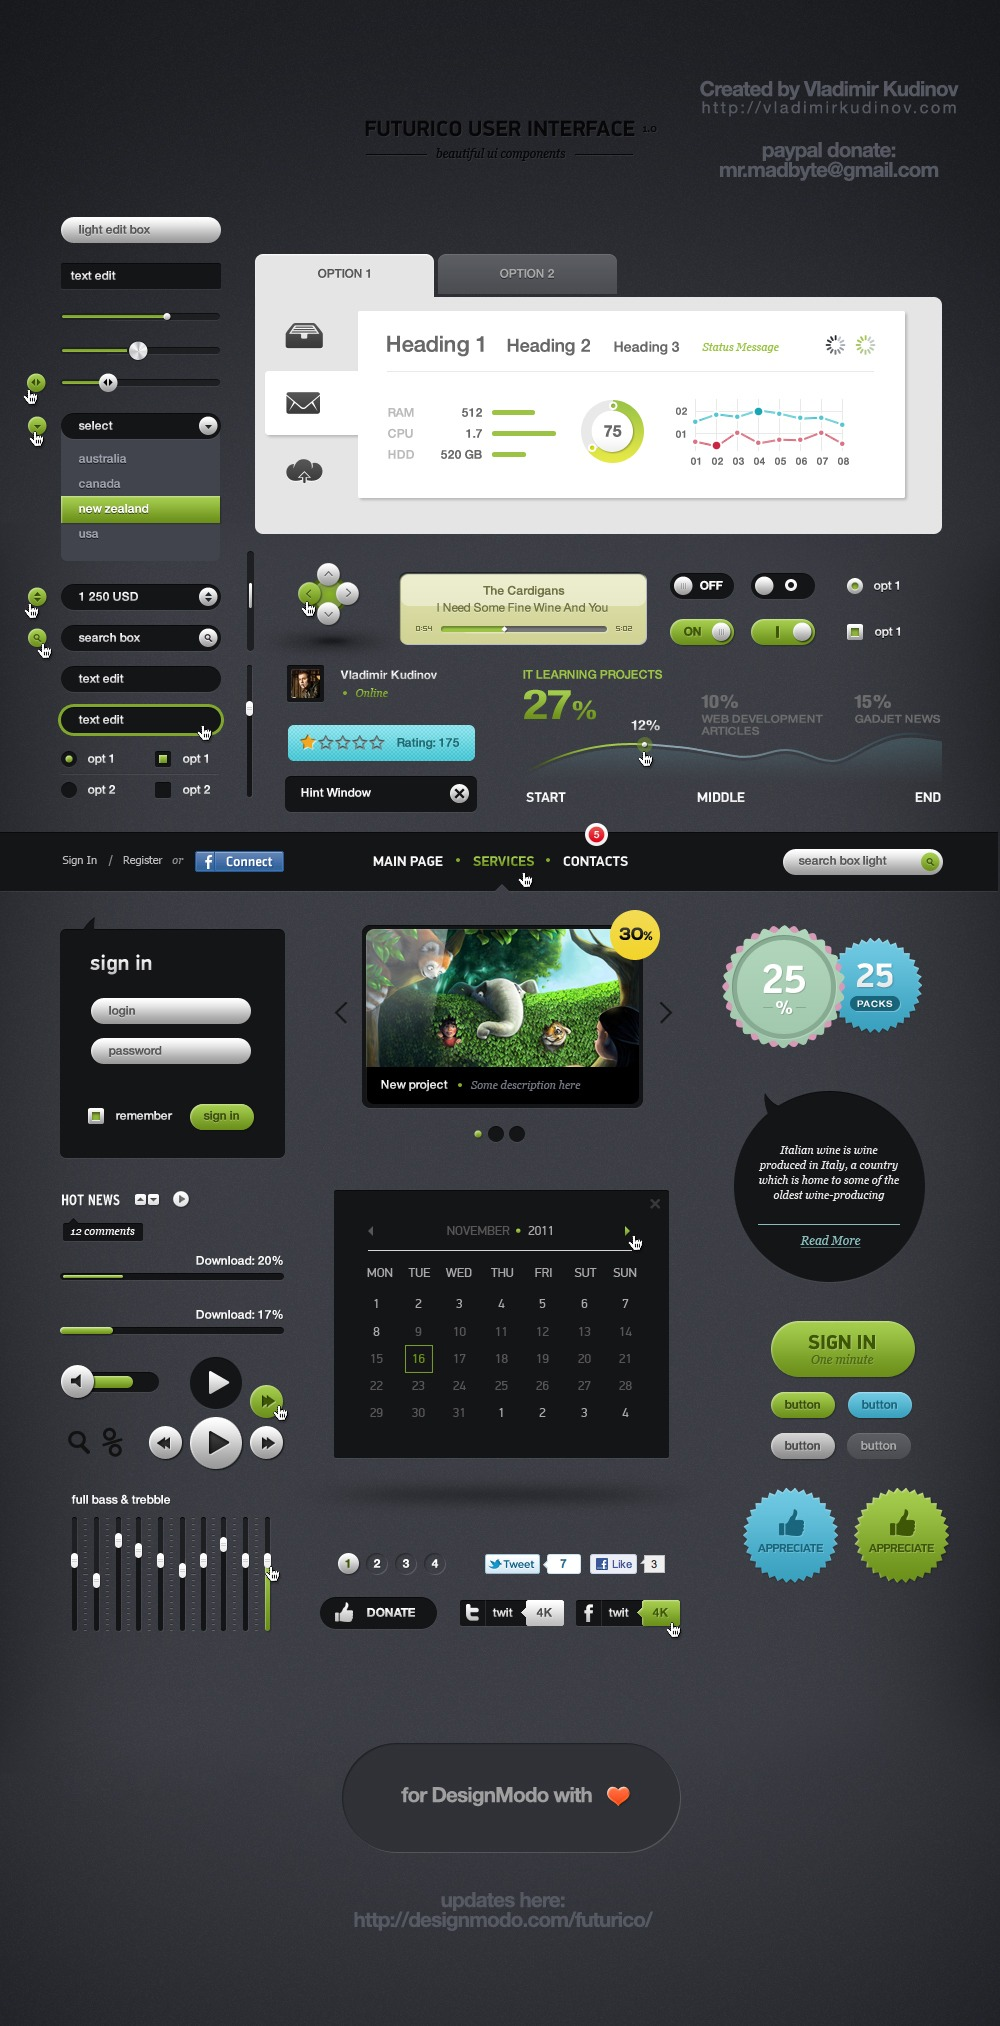 futurico   free user interface elements pack by prorock d4gxms7 40+ Free Web Elements